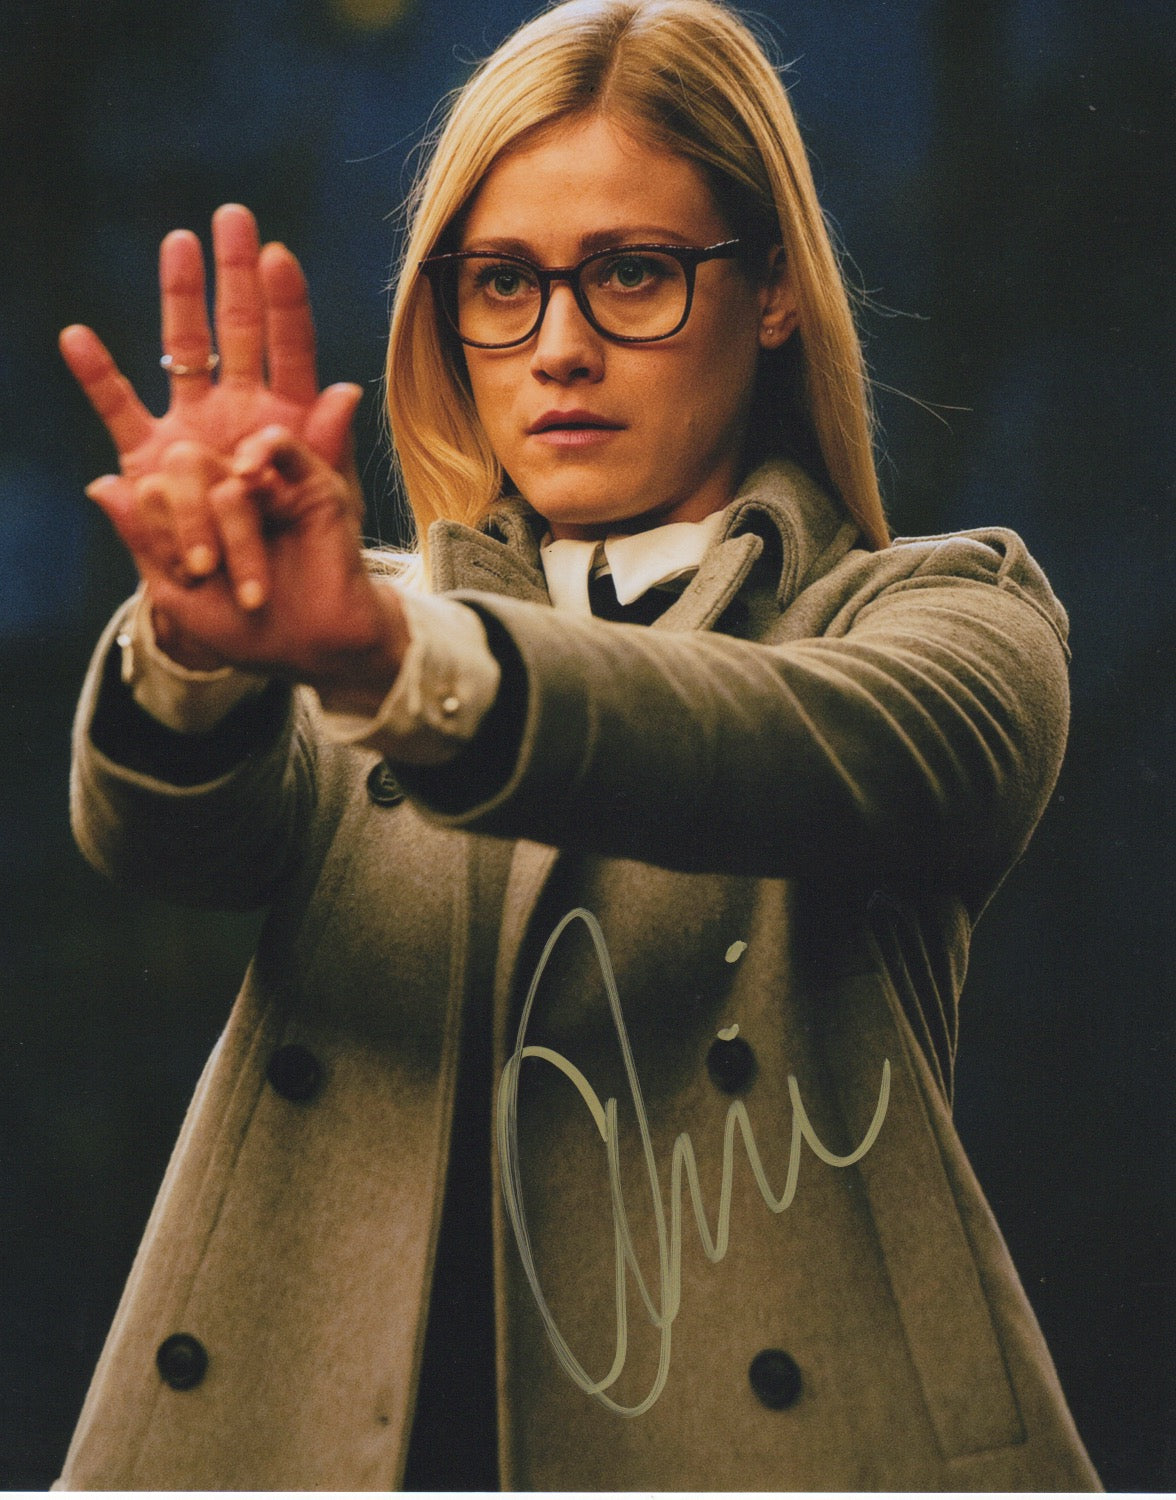 Olivia Taylor Dudley Magicians Signed Autograph 8x10 Photo #3 - Outlaw Hobbies Authentic Autographs